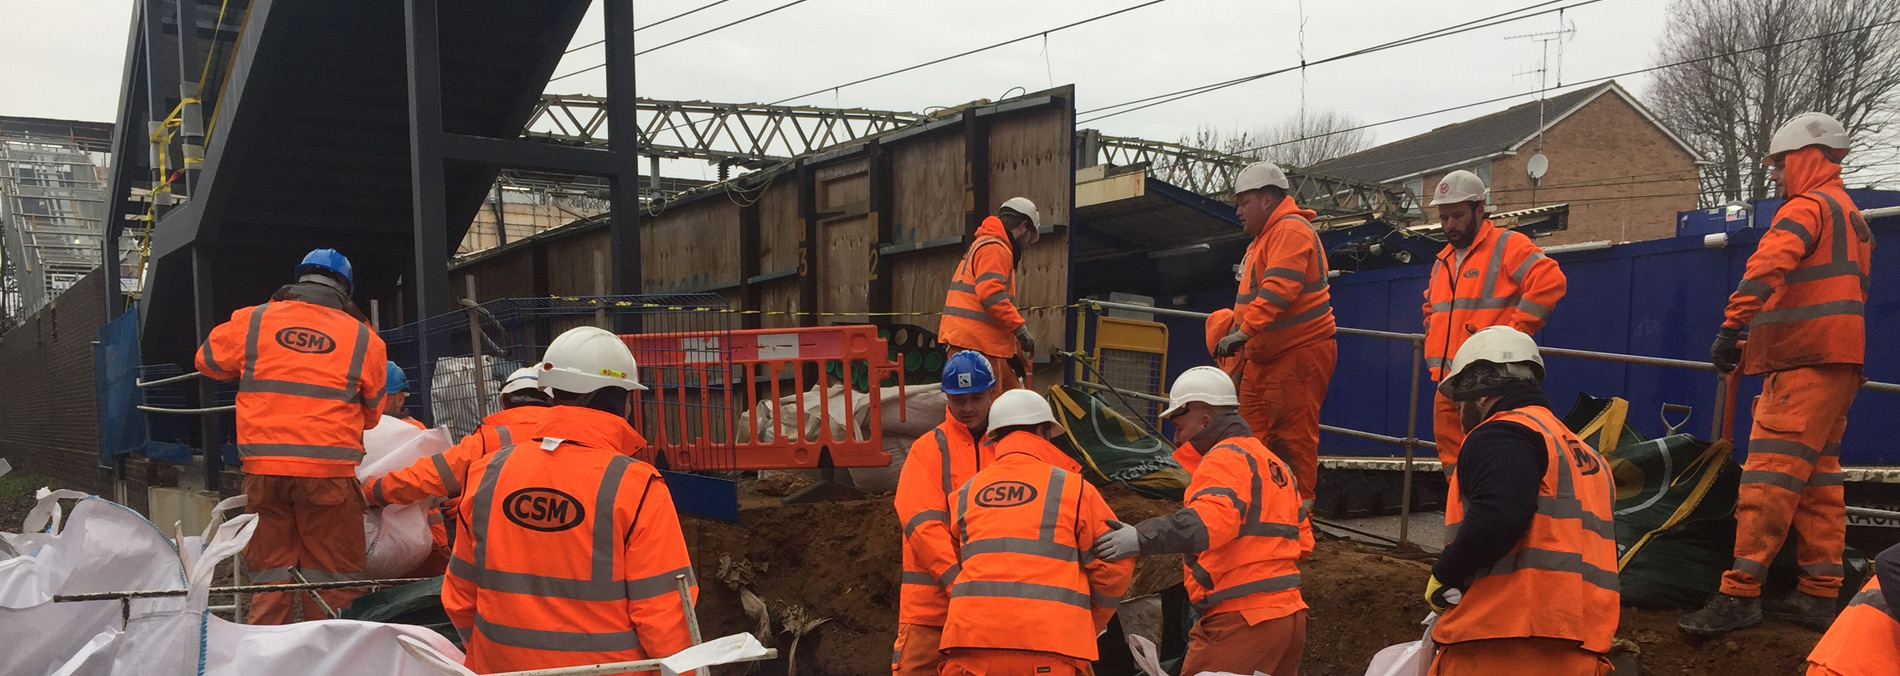 SPECIALIST RAILWAY CIVIL ENGINEERING